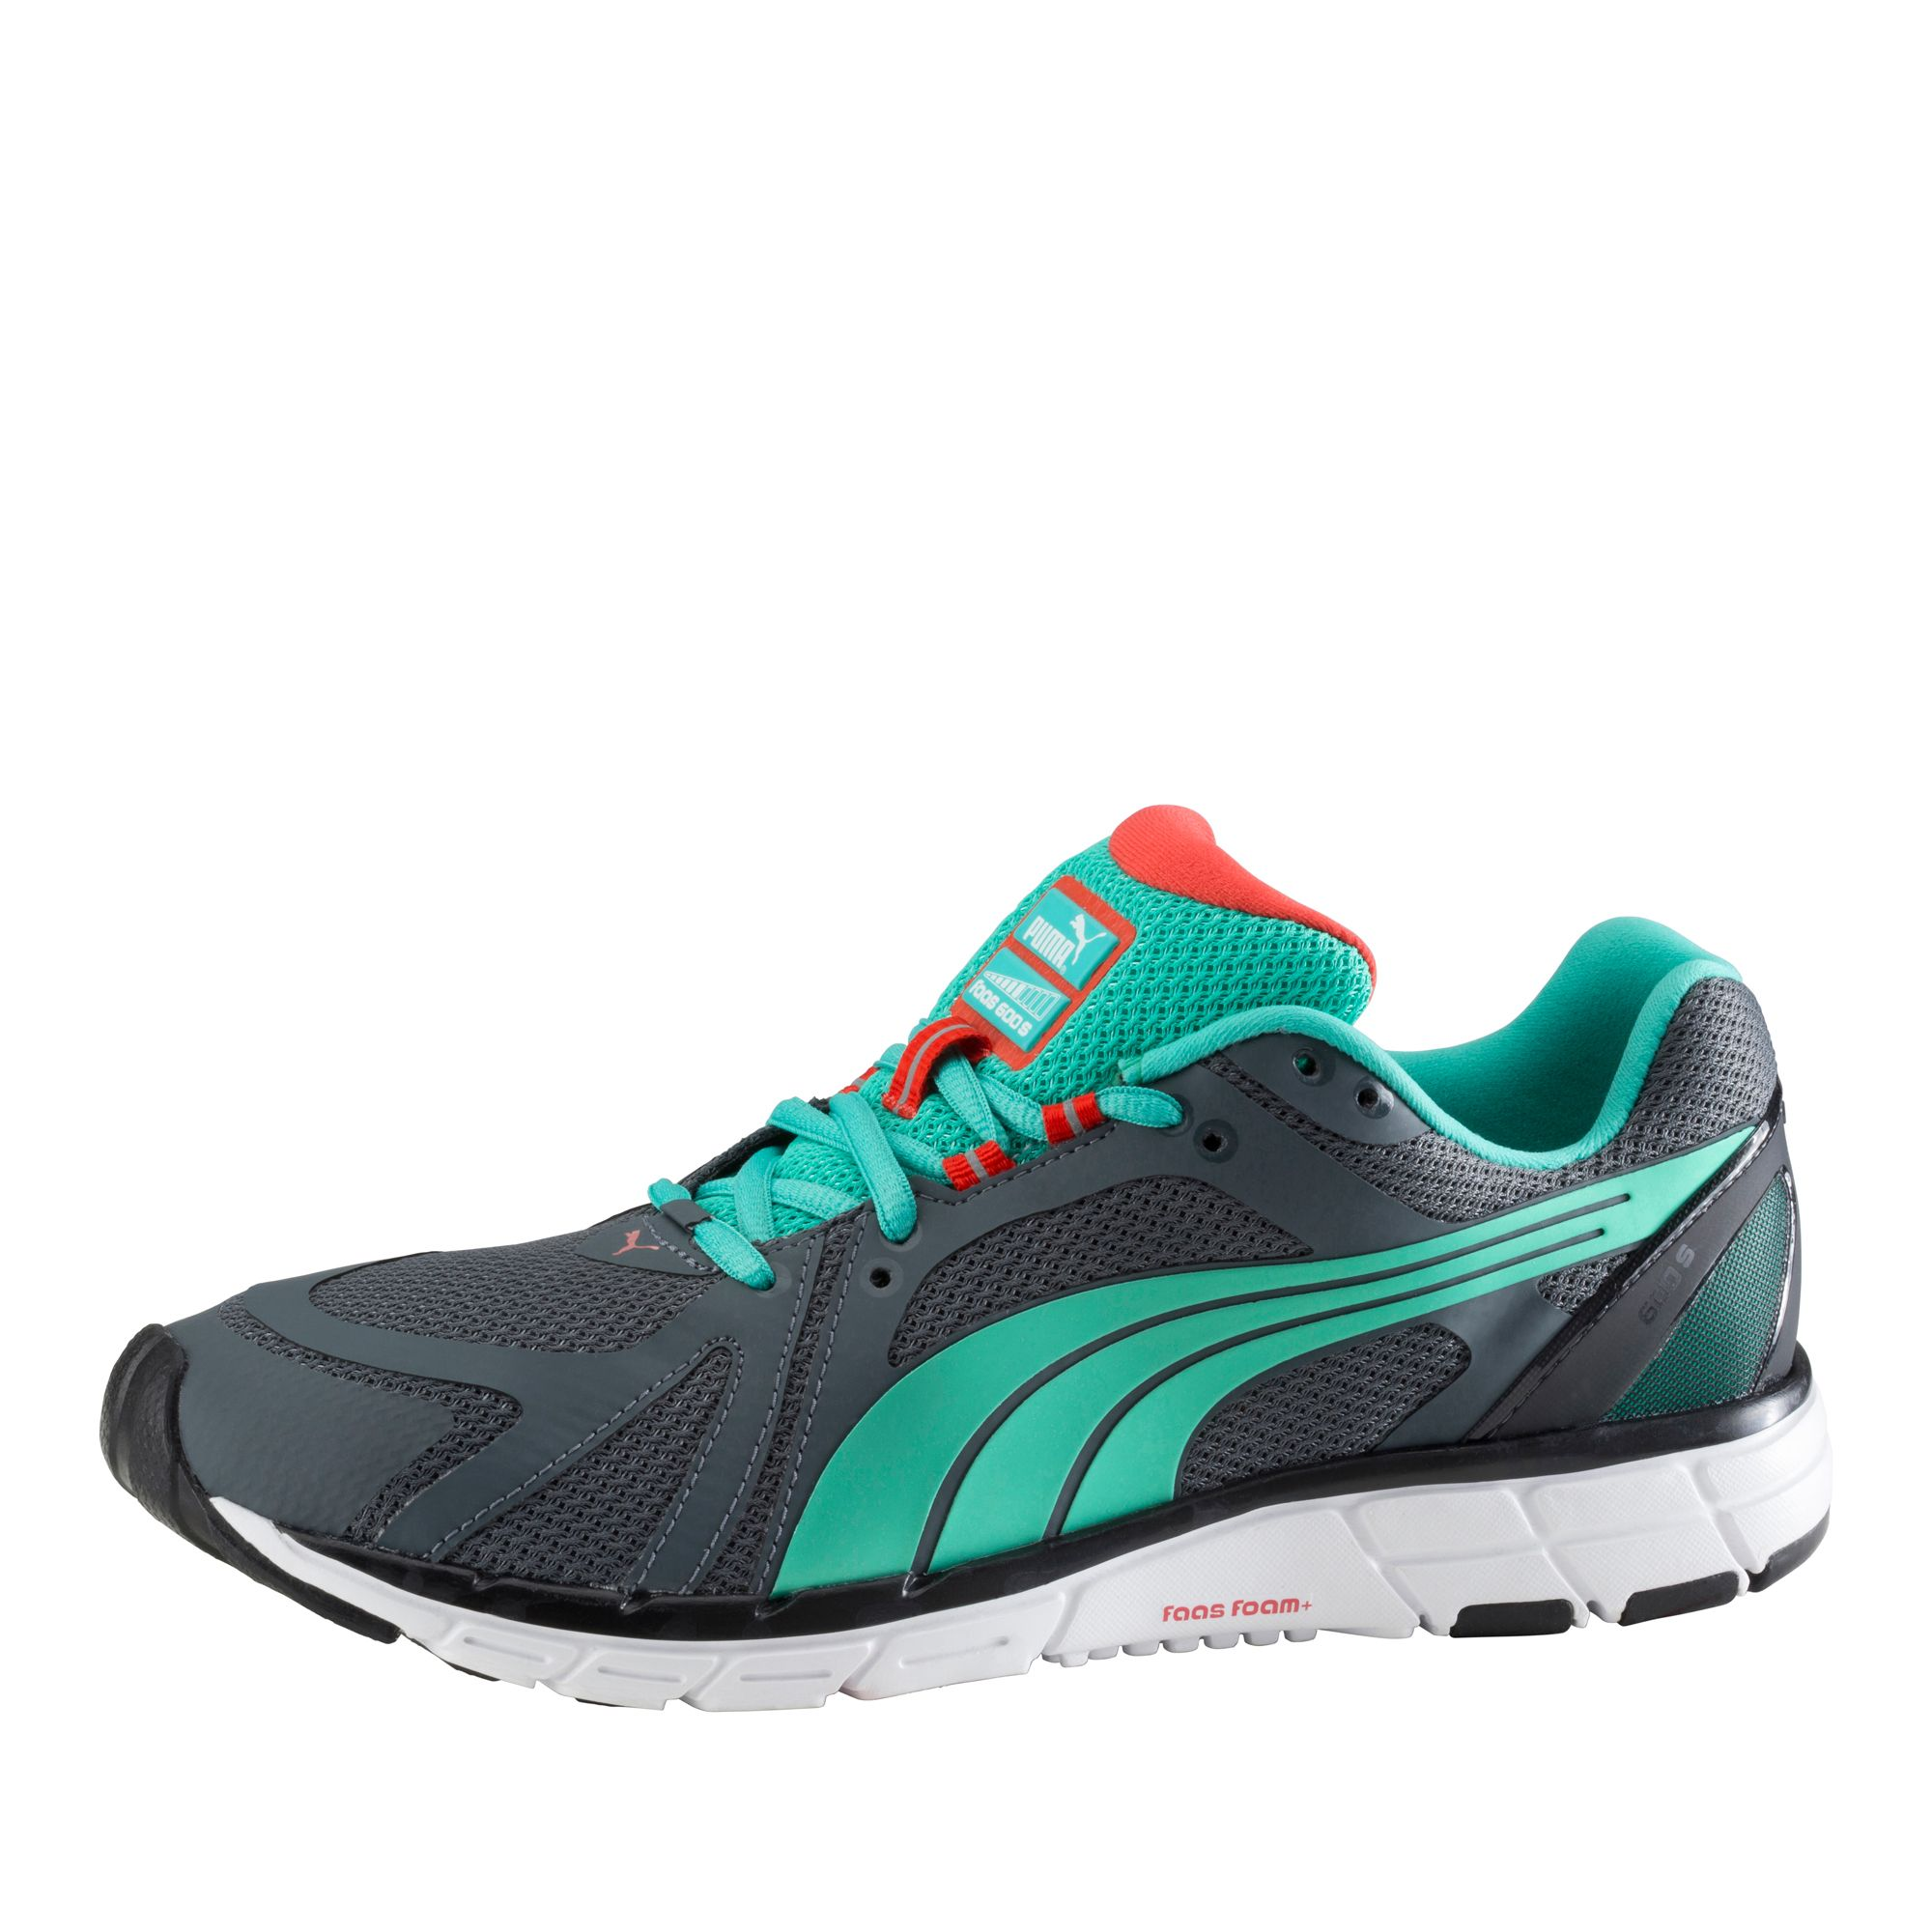 Puma Faas 600 S Mens Running Shoes AW14